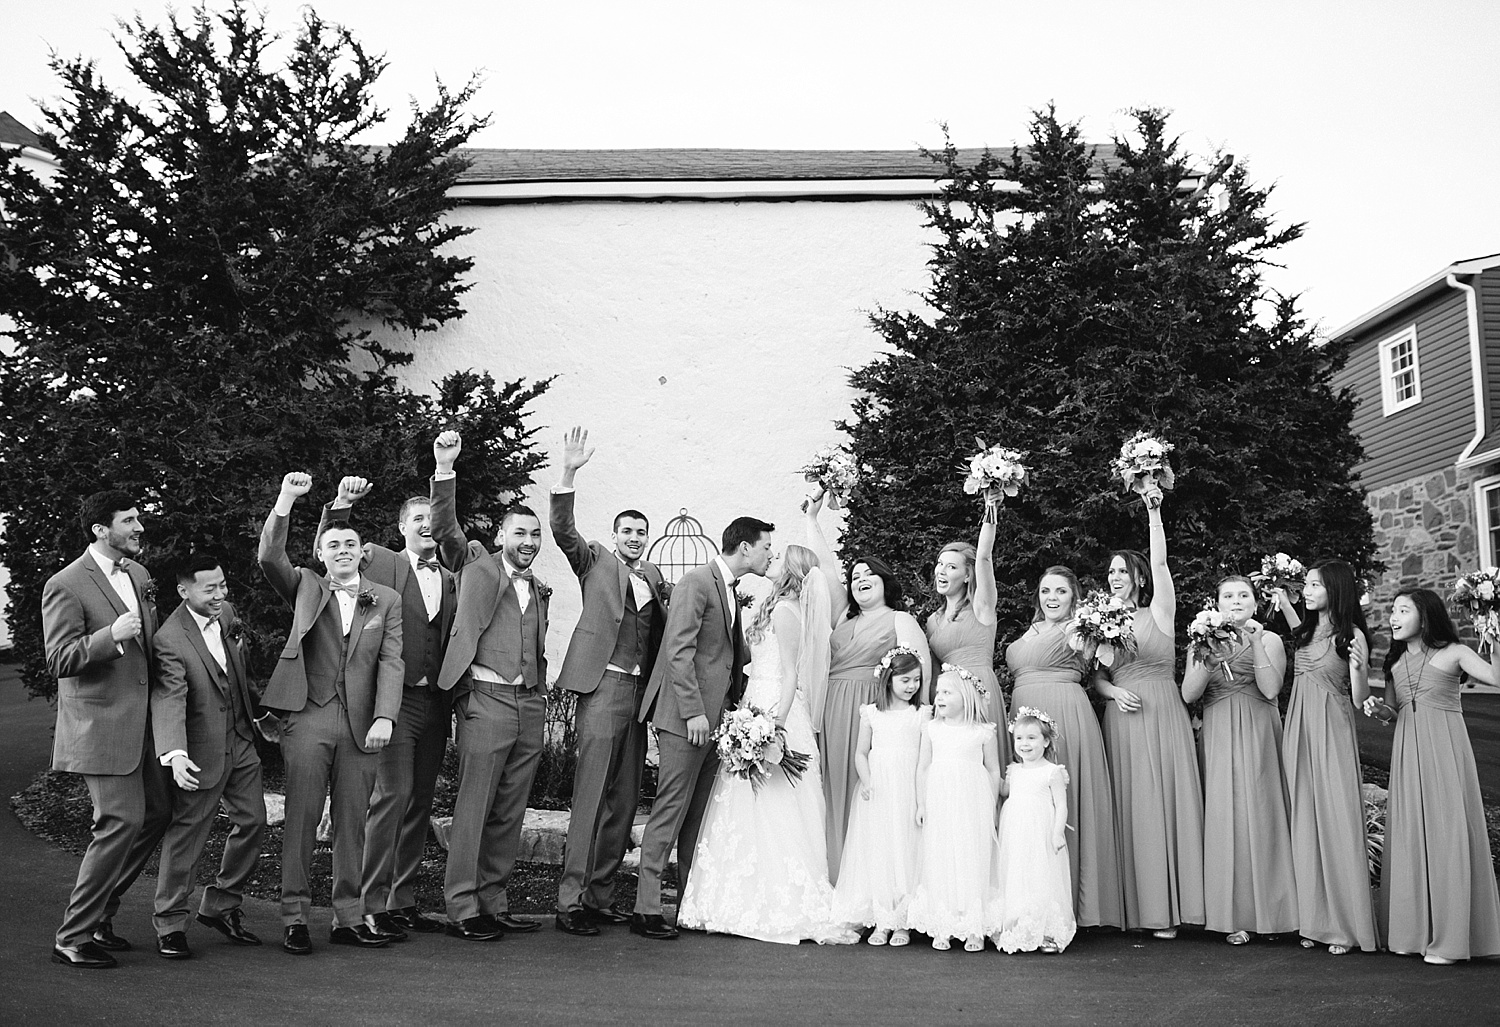 jessdavid_barnonbridge_phoenixville_winter_wedding_image_086.jpg